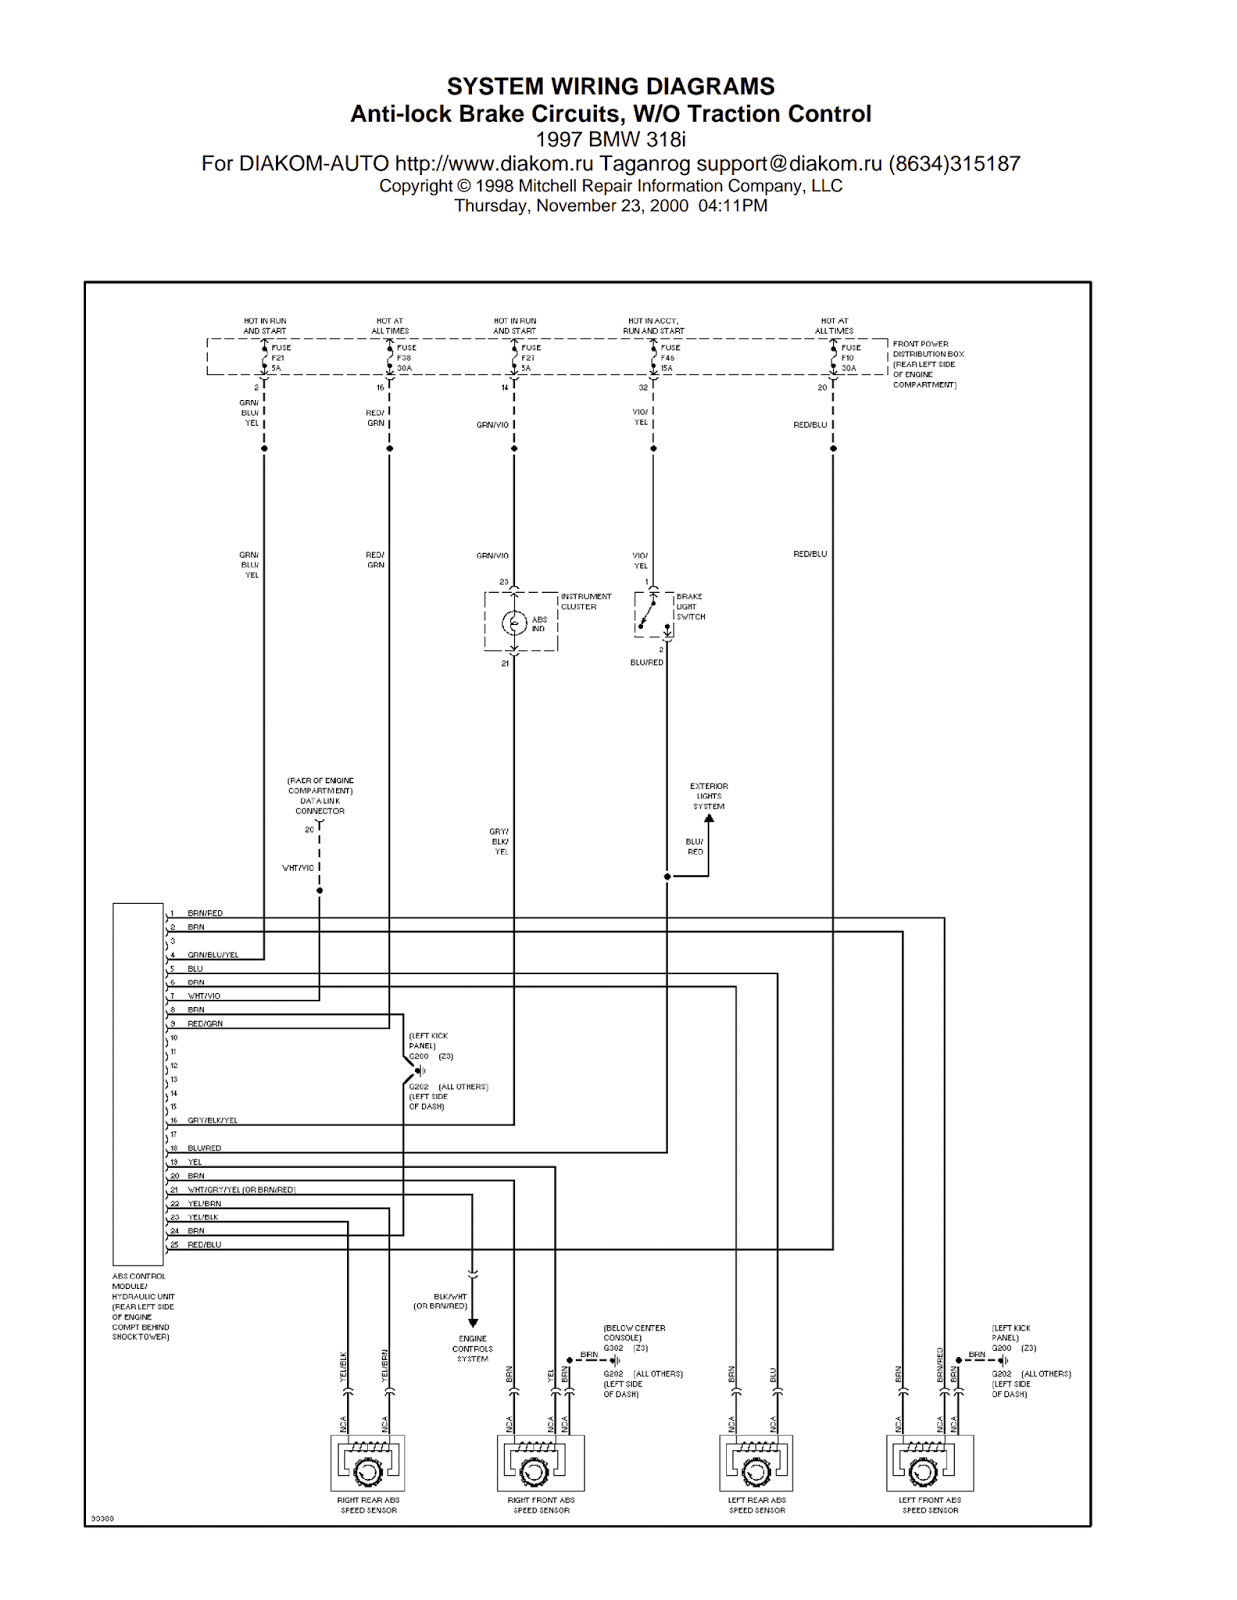 1997 subaru engine diagram wiring diagrams and free manual ebooks: 1997 bmw 318i anti ... 1997 318i engine diagram